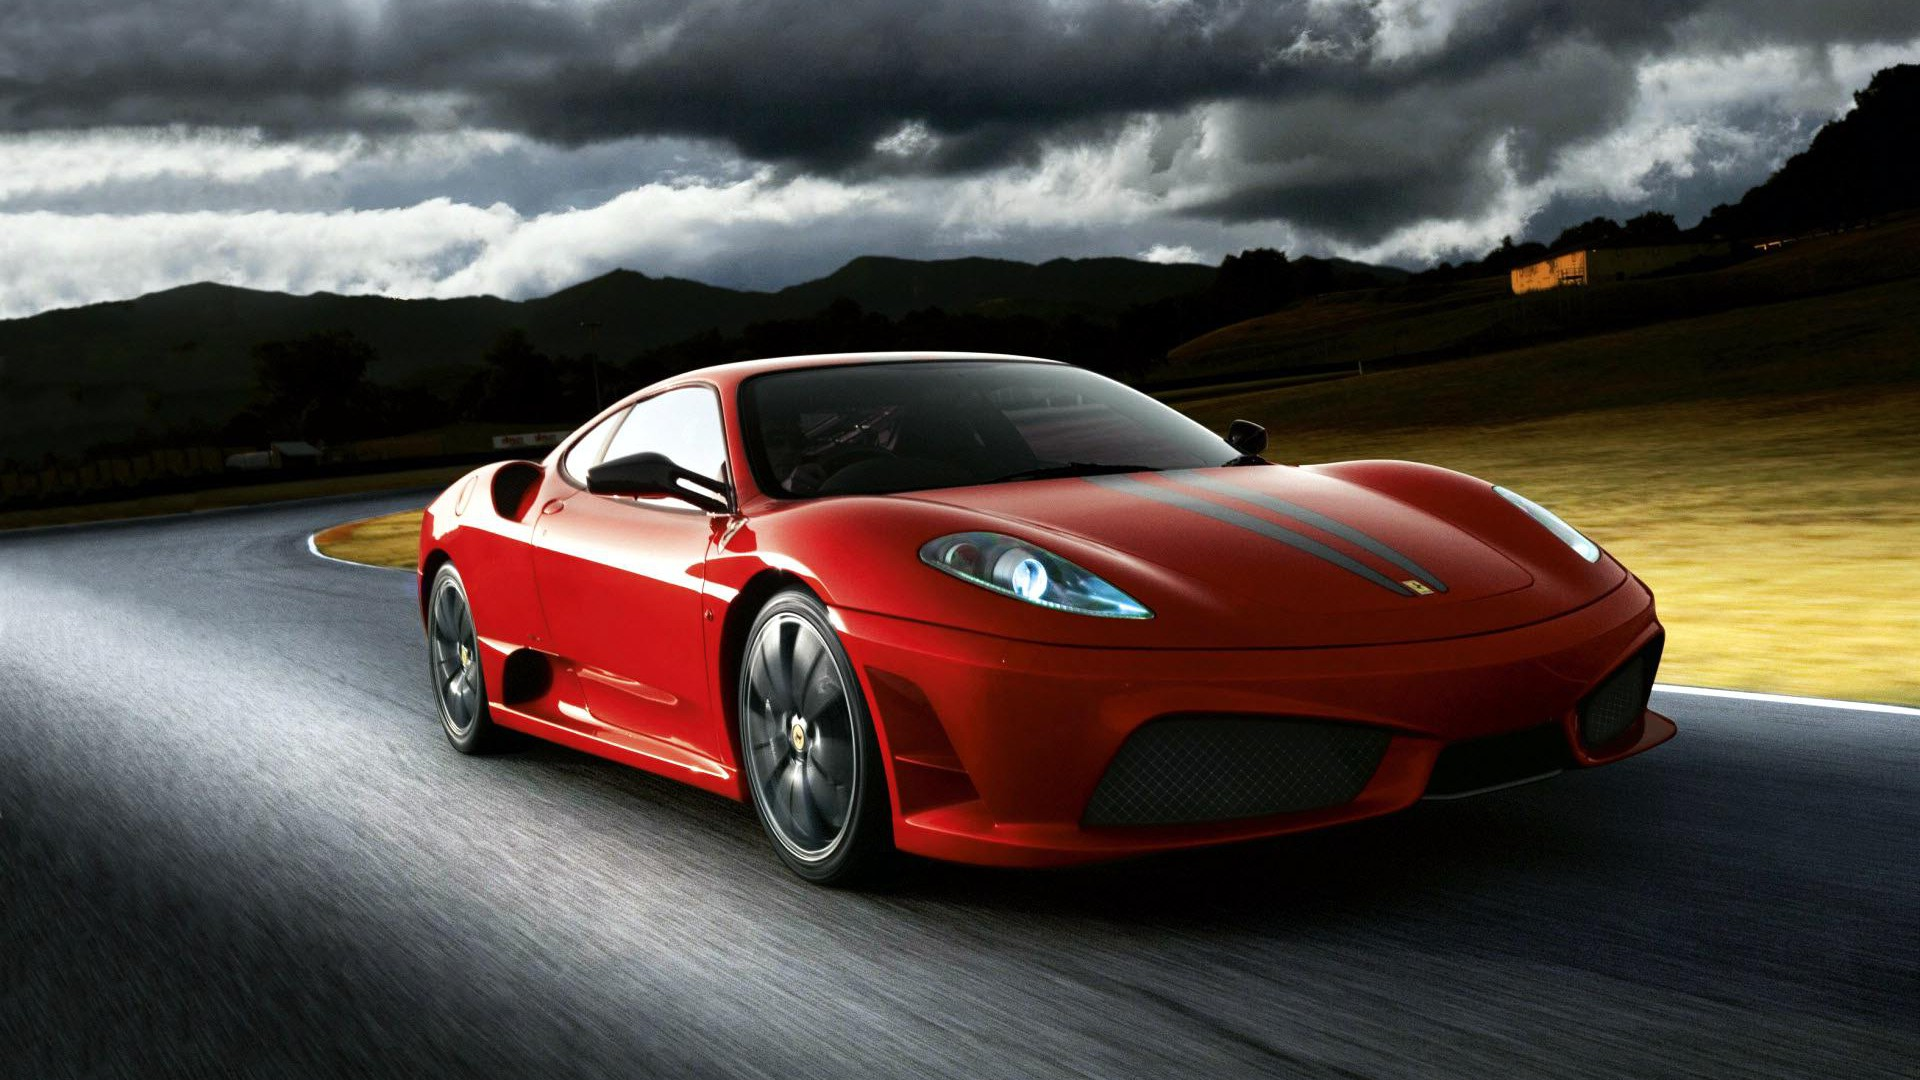 Coolest Collection Of Ferrari Wallpaper Backgrounds In Hd